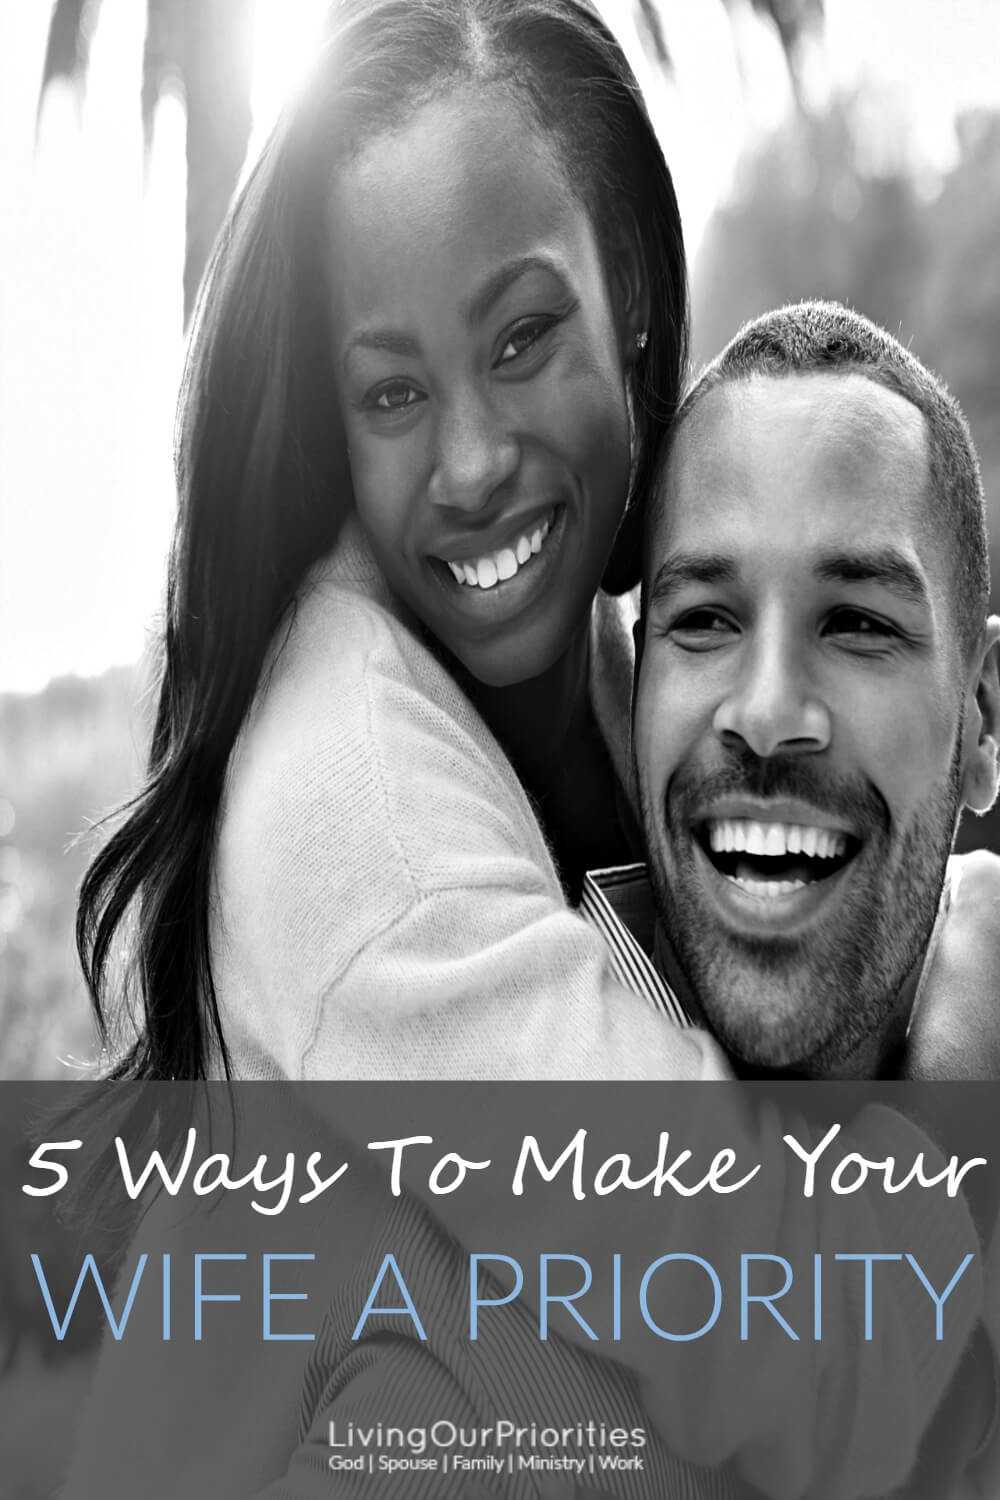 Do you make your wife a priority? When I focus my efforts on these 5 ways my wife KNOWS she is MY PRIORITY.